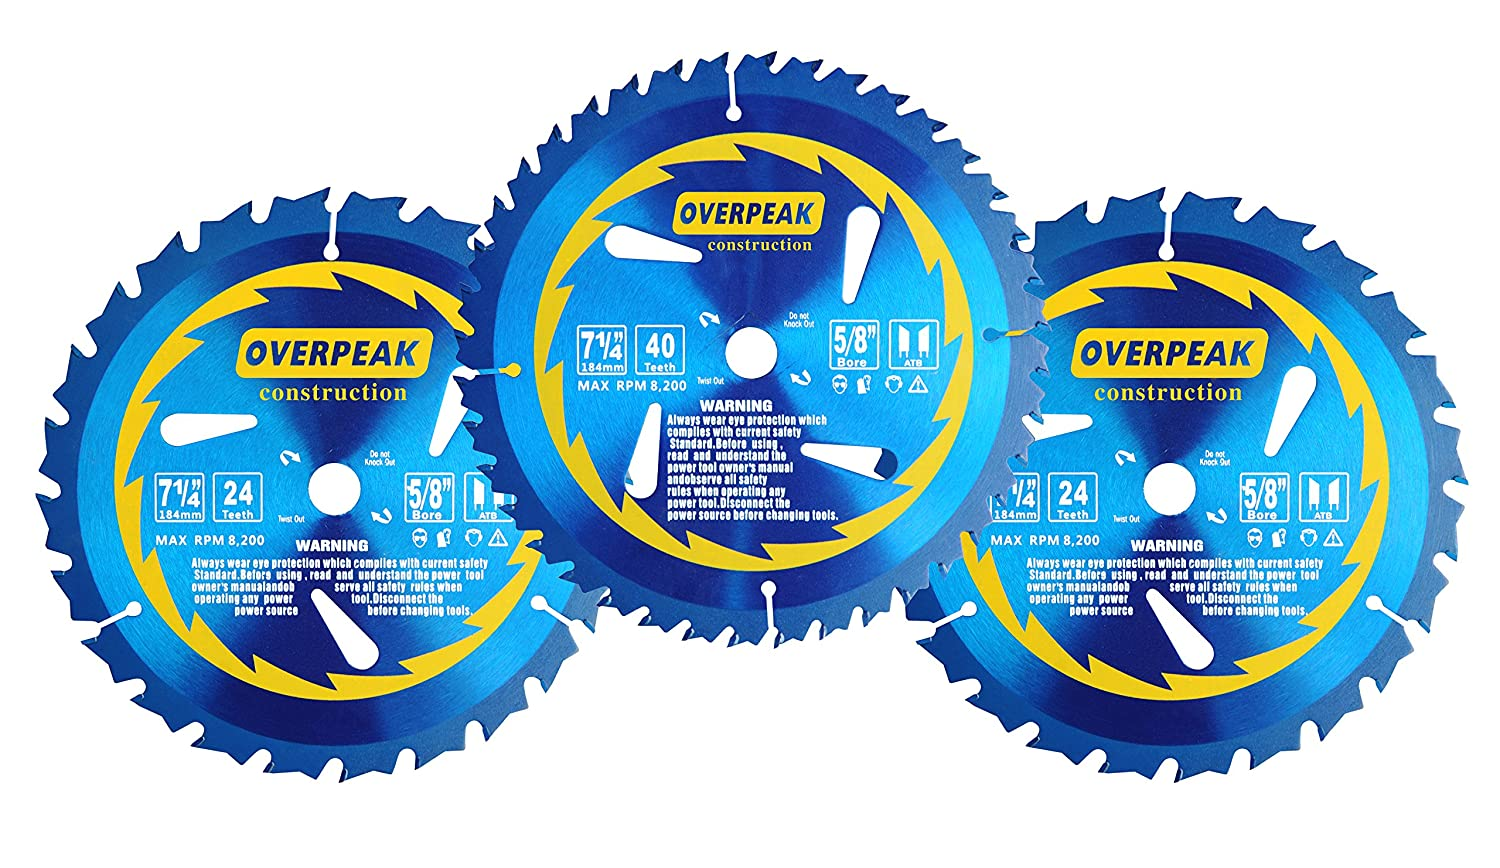 Overpeak 7 14 inch fine finishing circular saw blade 2 x 24 tooth overpeak 7 14 inch fine finishing circular saw blade 2 x 24 tooth 1x 40 tooth atb table saw blades combo 3 pack amazon greentooth Images